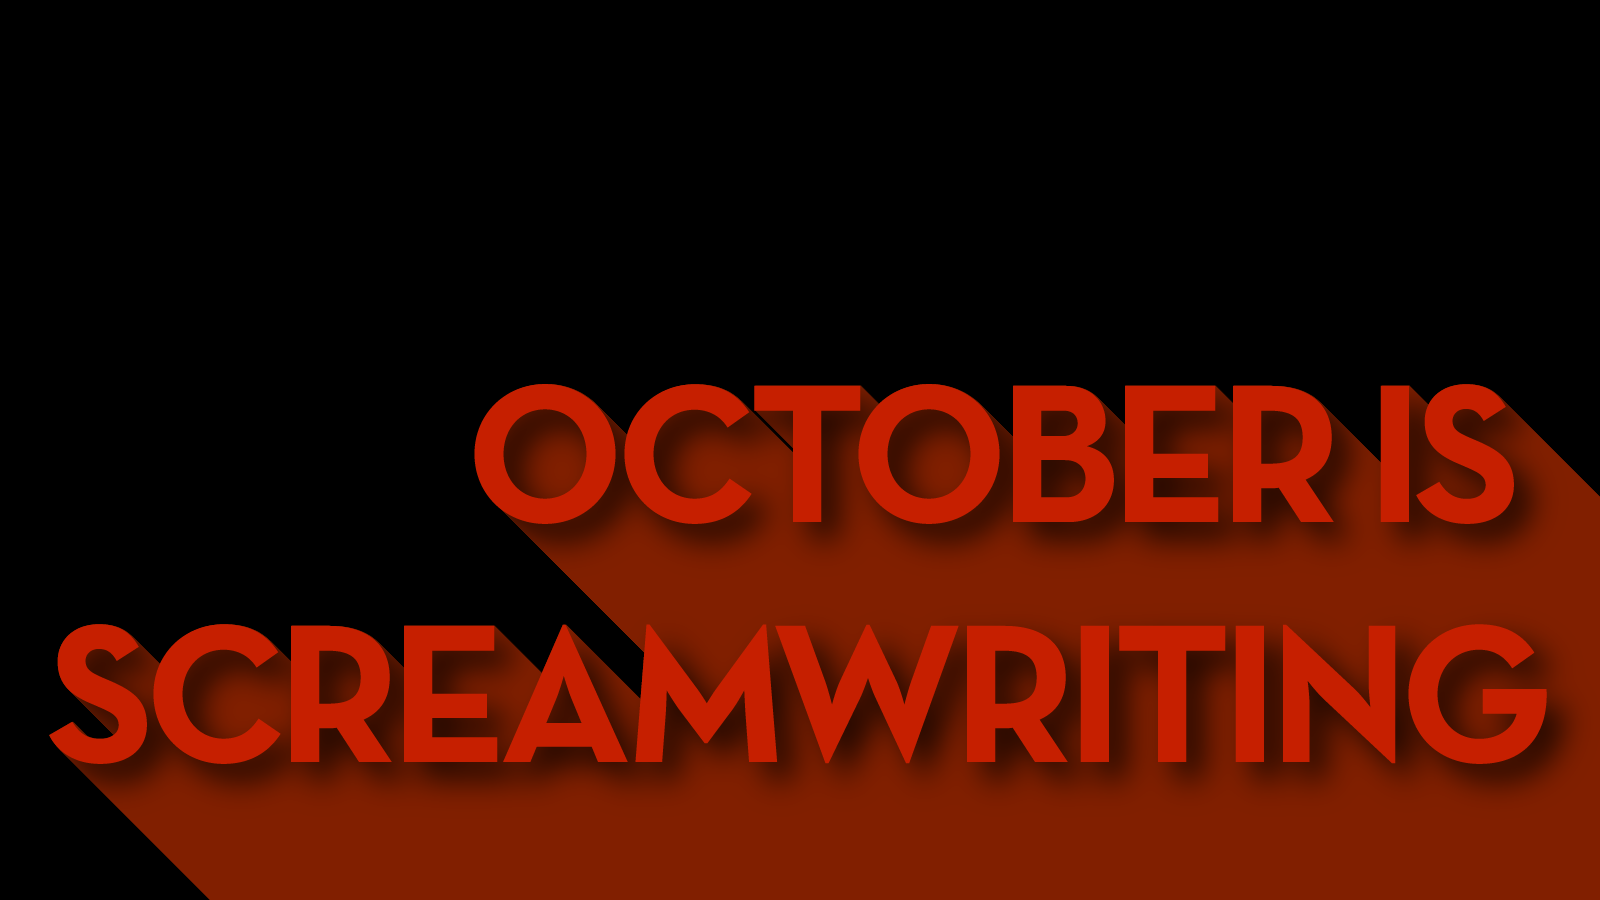 october_is_screamwriting-01.png